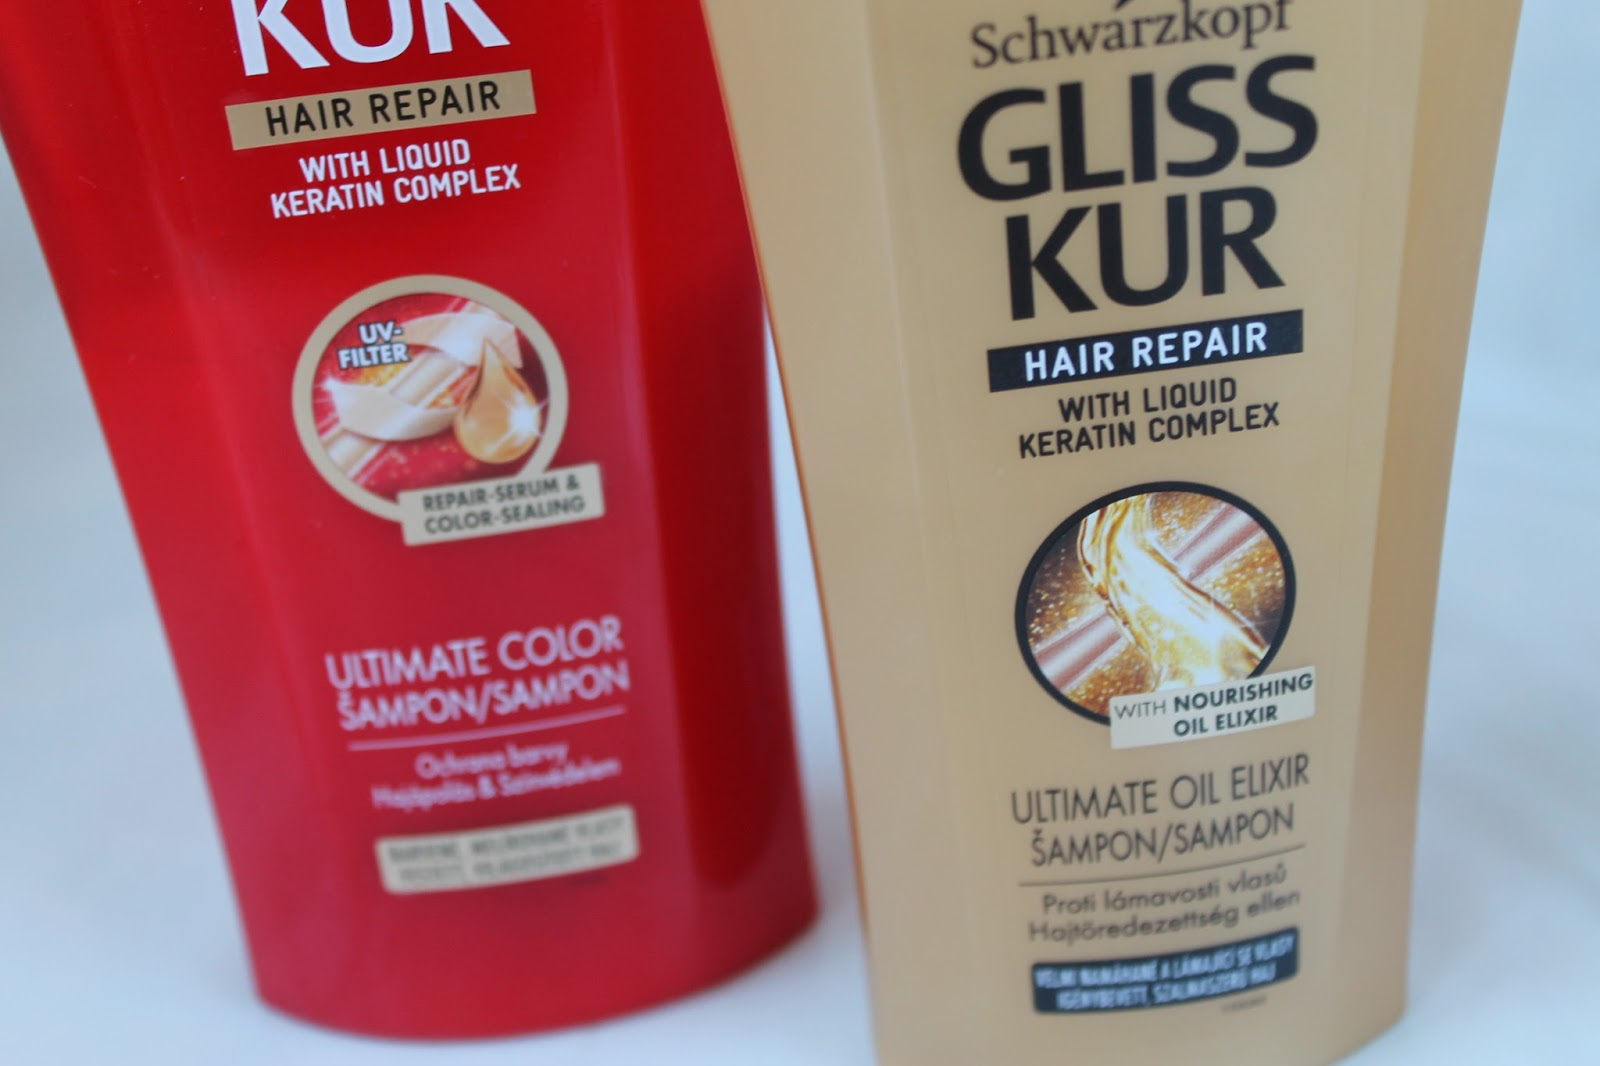 Gliss Kur Hair Repair